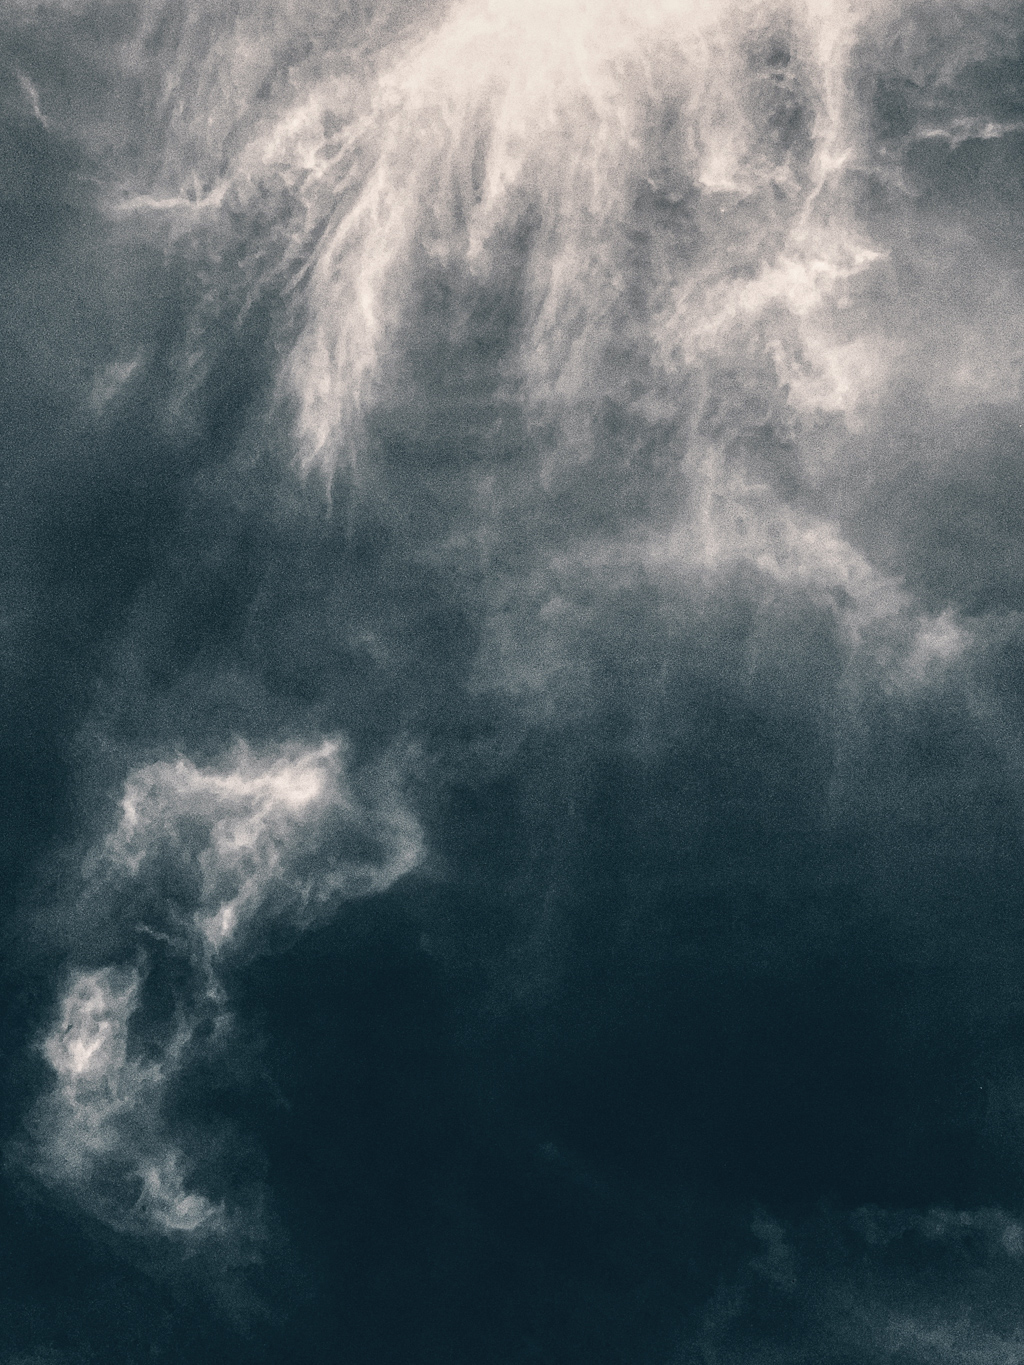 hedy bach images - cloud up - 7